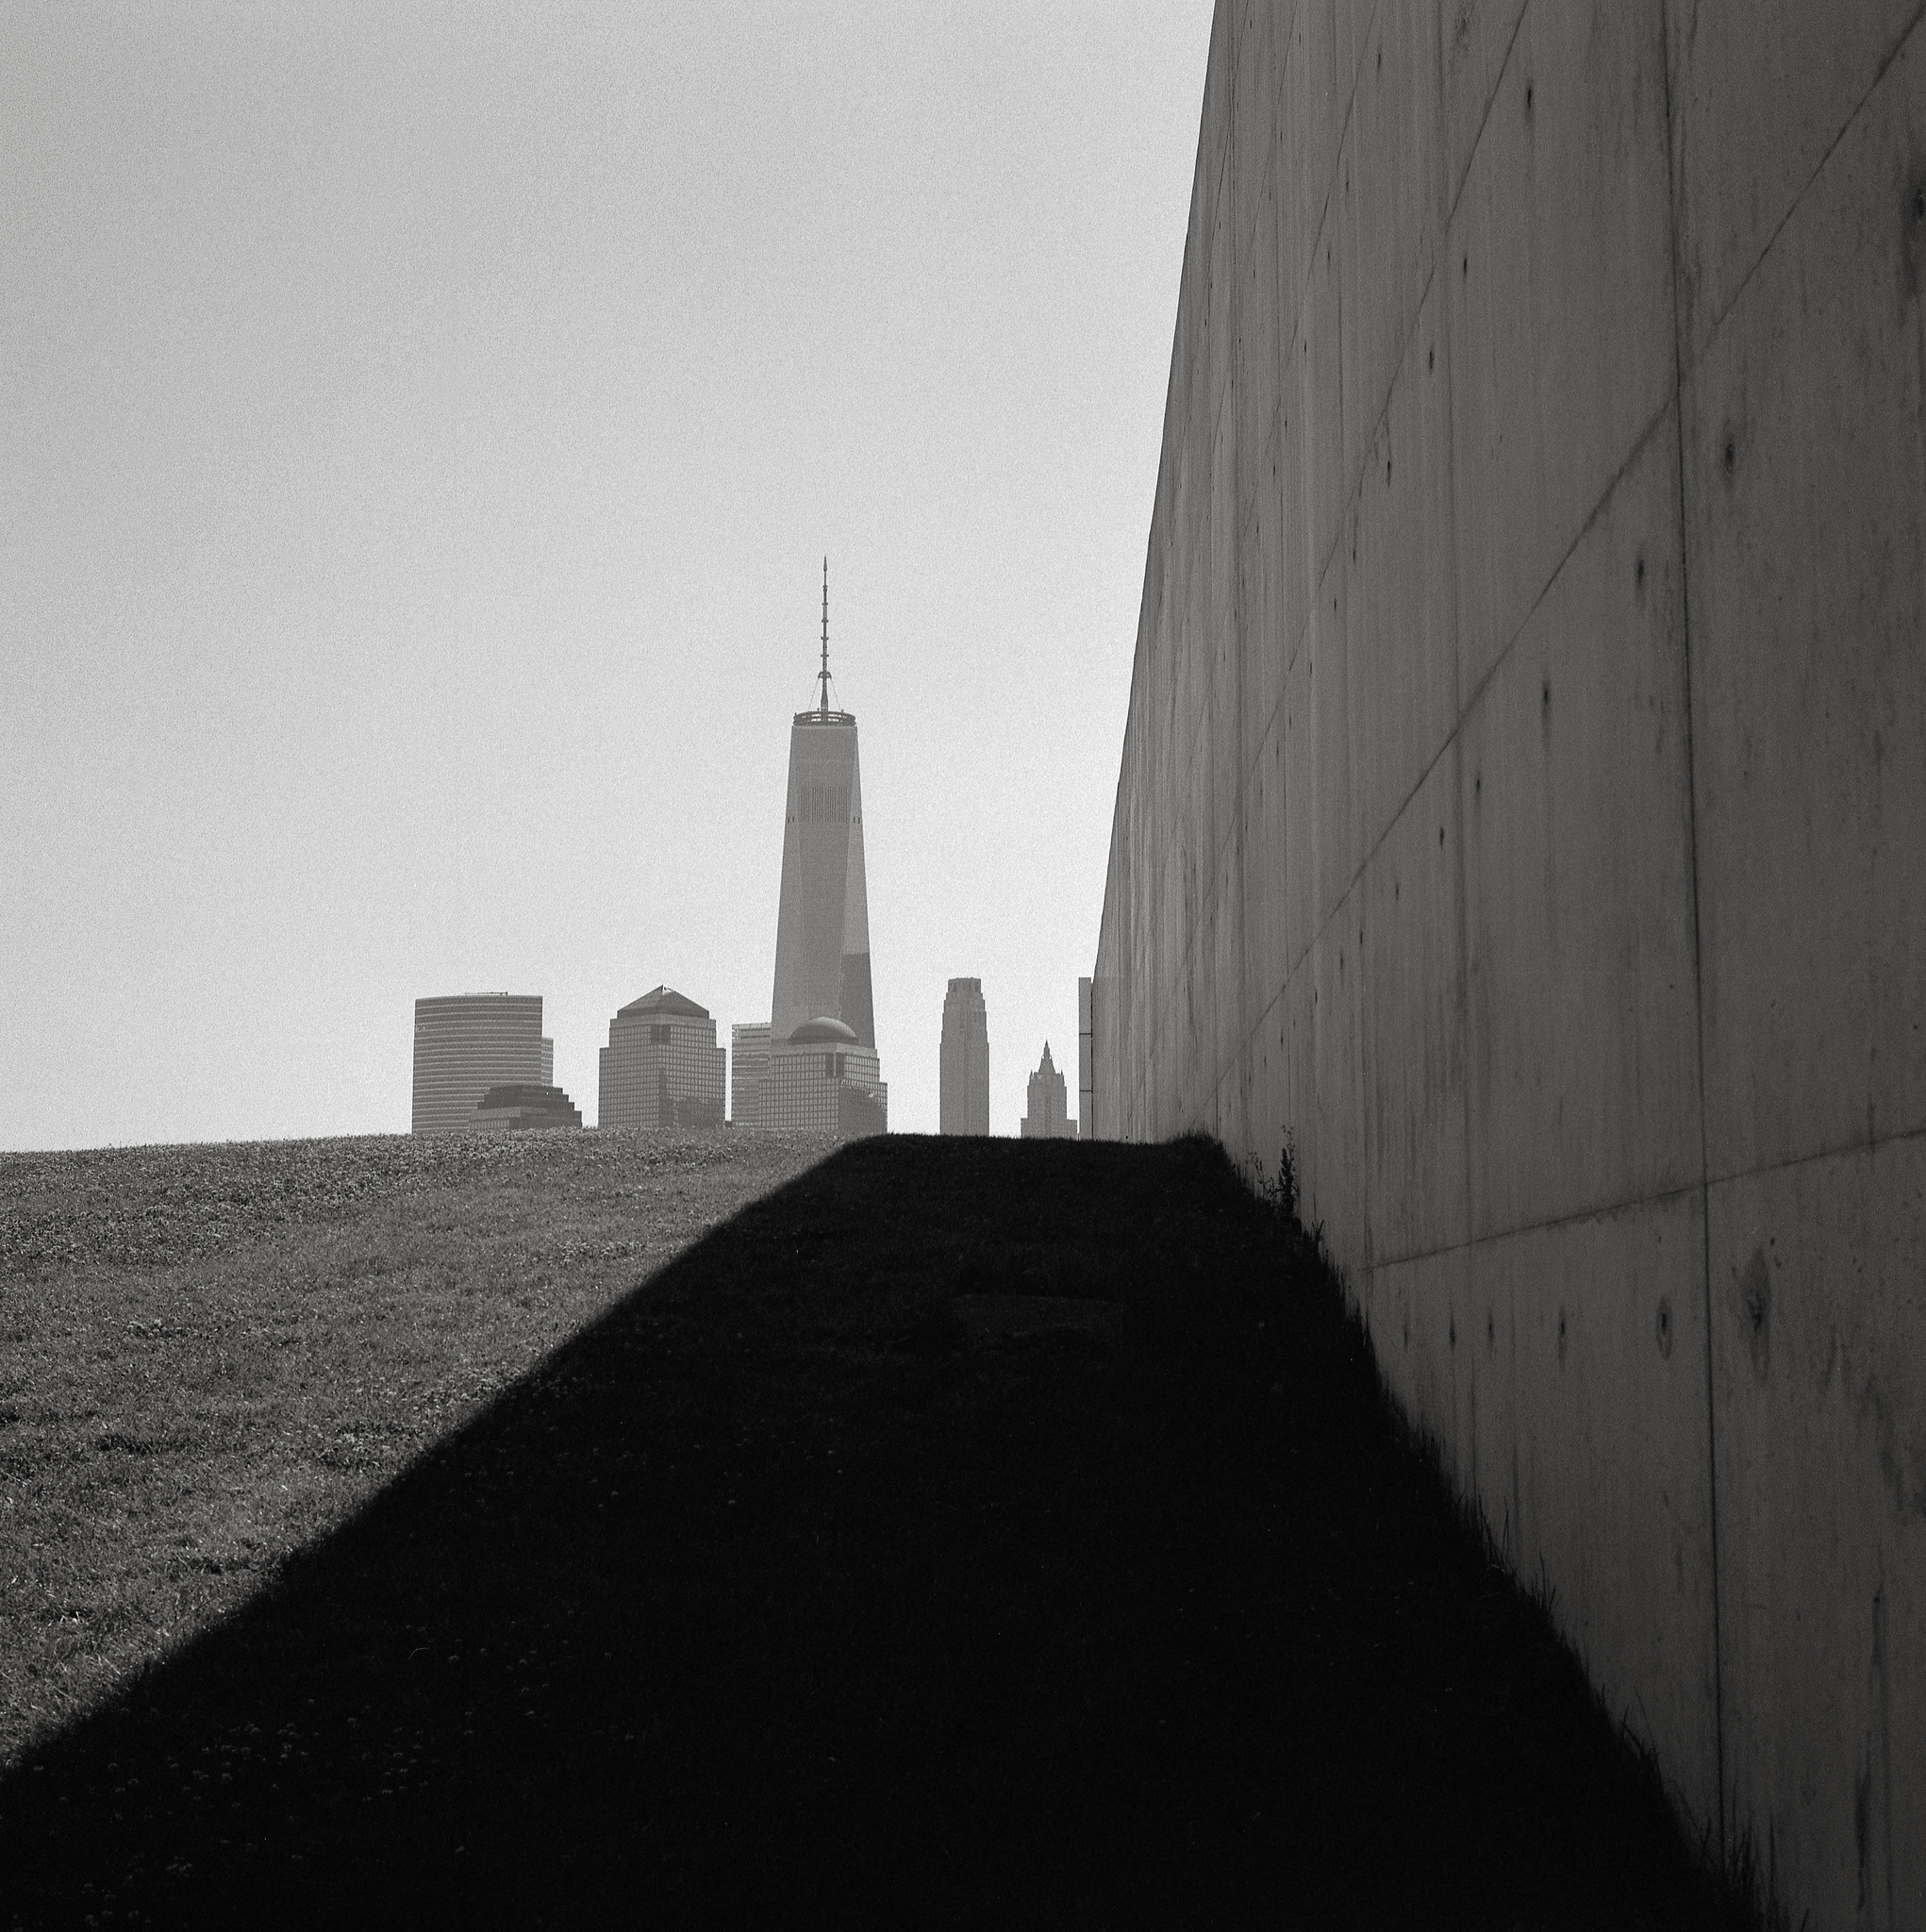 Shadow, 9/11 Empty Sky Memorial, Liberty State Park, New Jersey